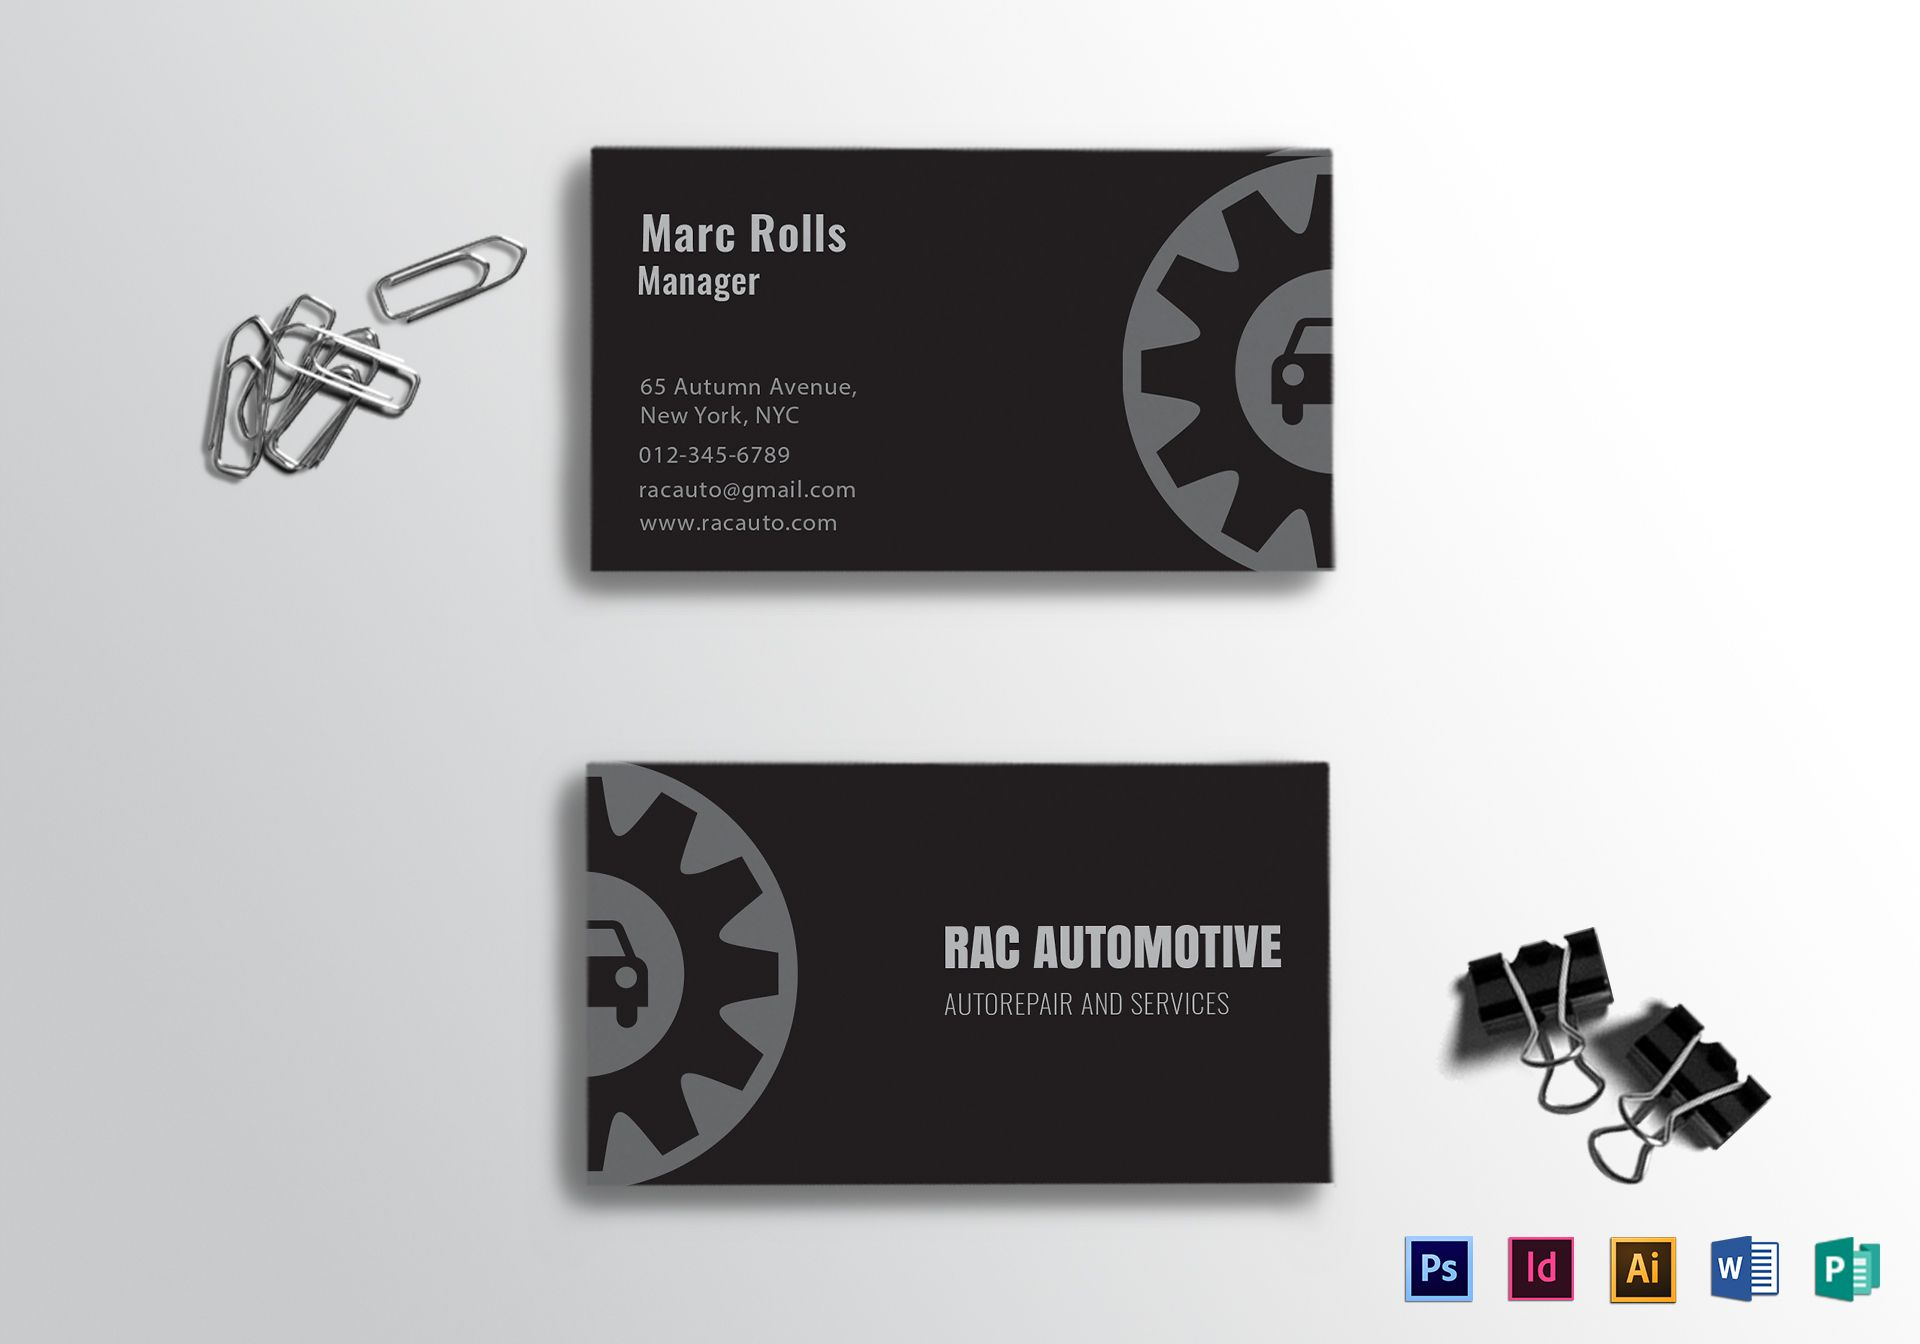 Automotive Business Card Template For Automotive Business Card Templates Sample Profes Free Business Card Templates Card Templates Business Card Template Psd Mechanic business cards template free